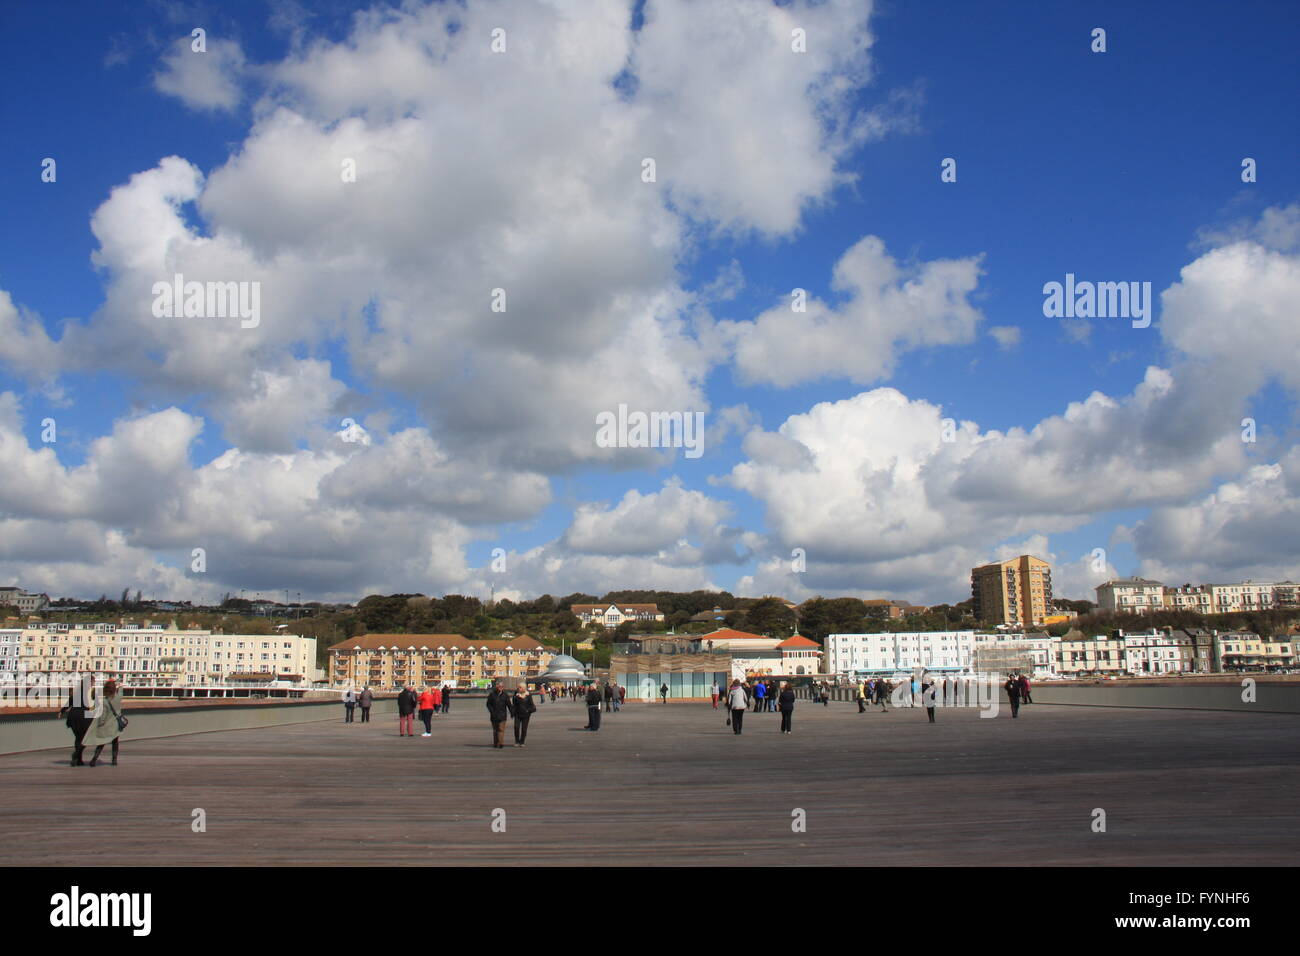 A WIDE VIEW ON A SUNNY DAY SHOWING VISITORS WALKING ACROSS THE DECKS OF THE NEWLY RESTORED AND RE-OPENED HASTINGS - Stock Image